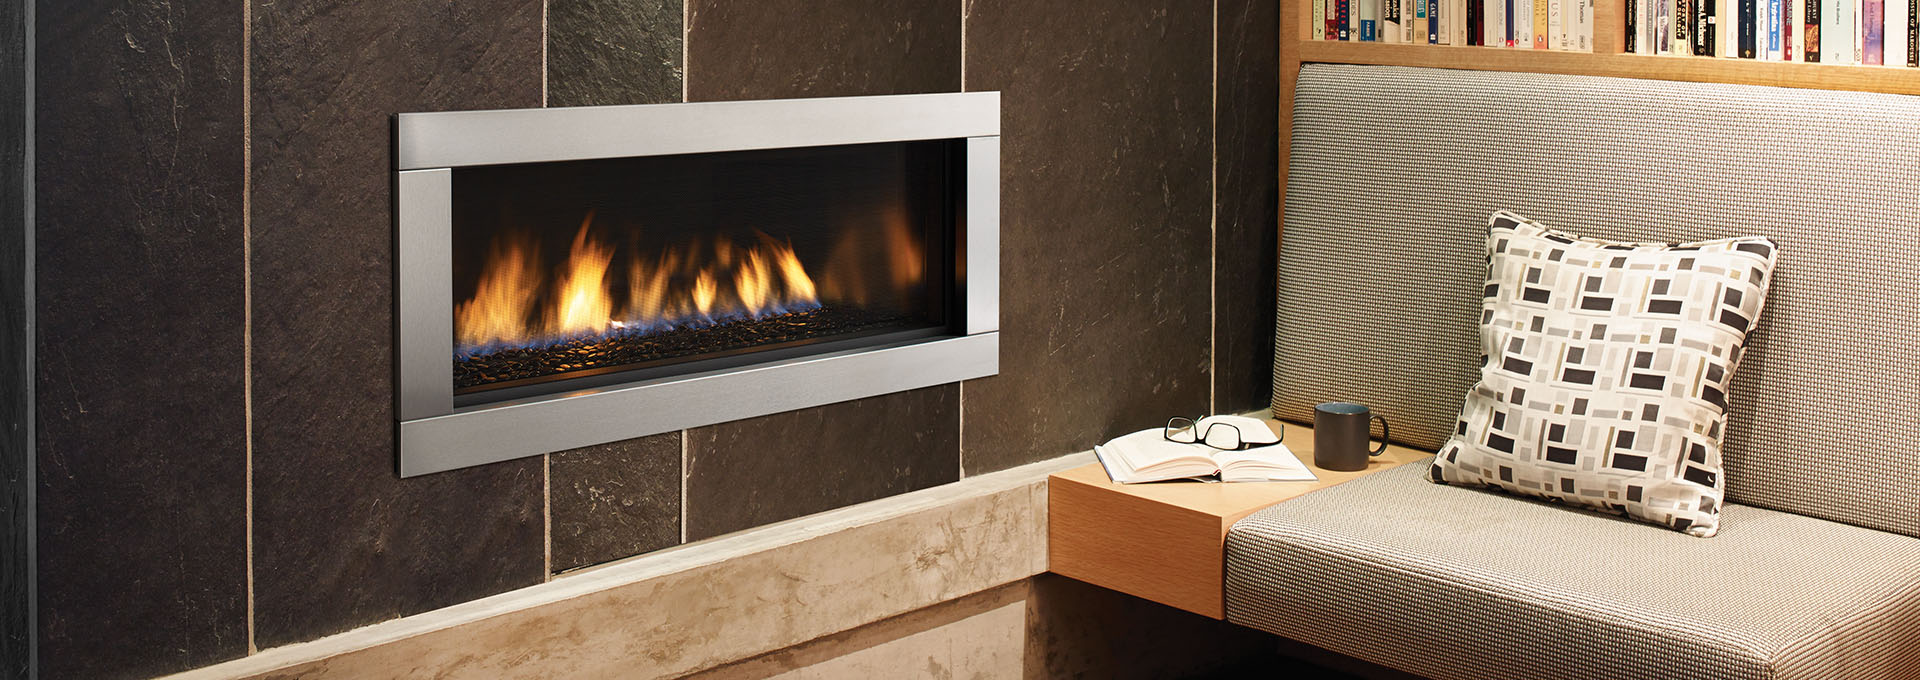 Regency Horizon Hz30e Contemporary Gas Fireplace Toronto